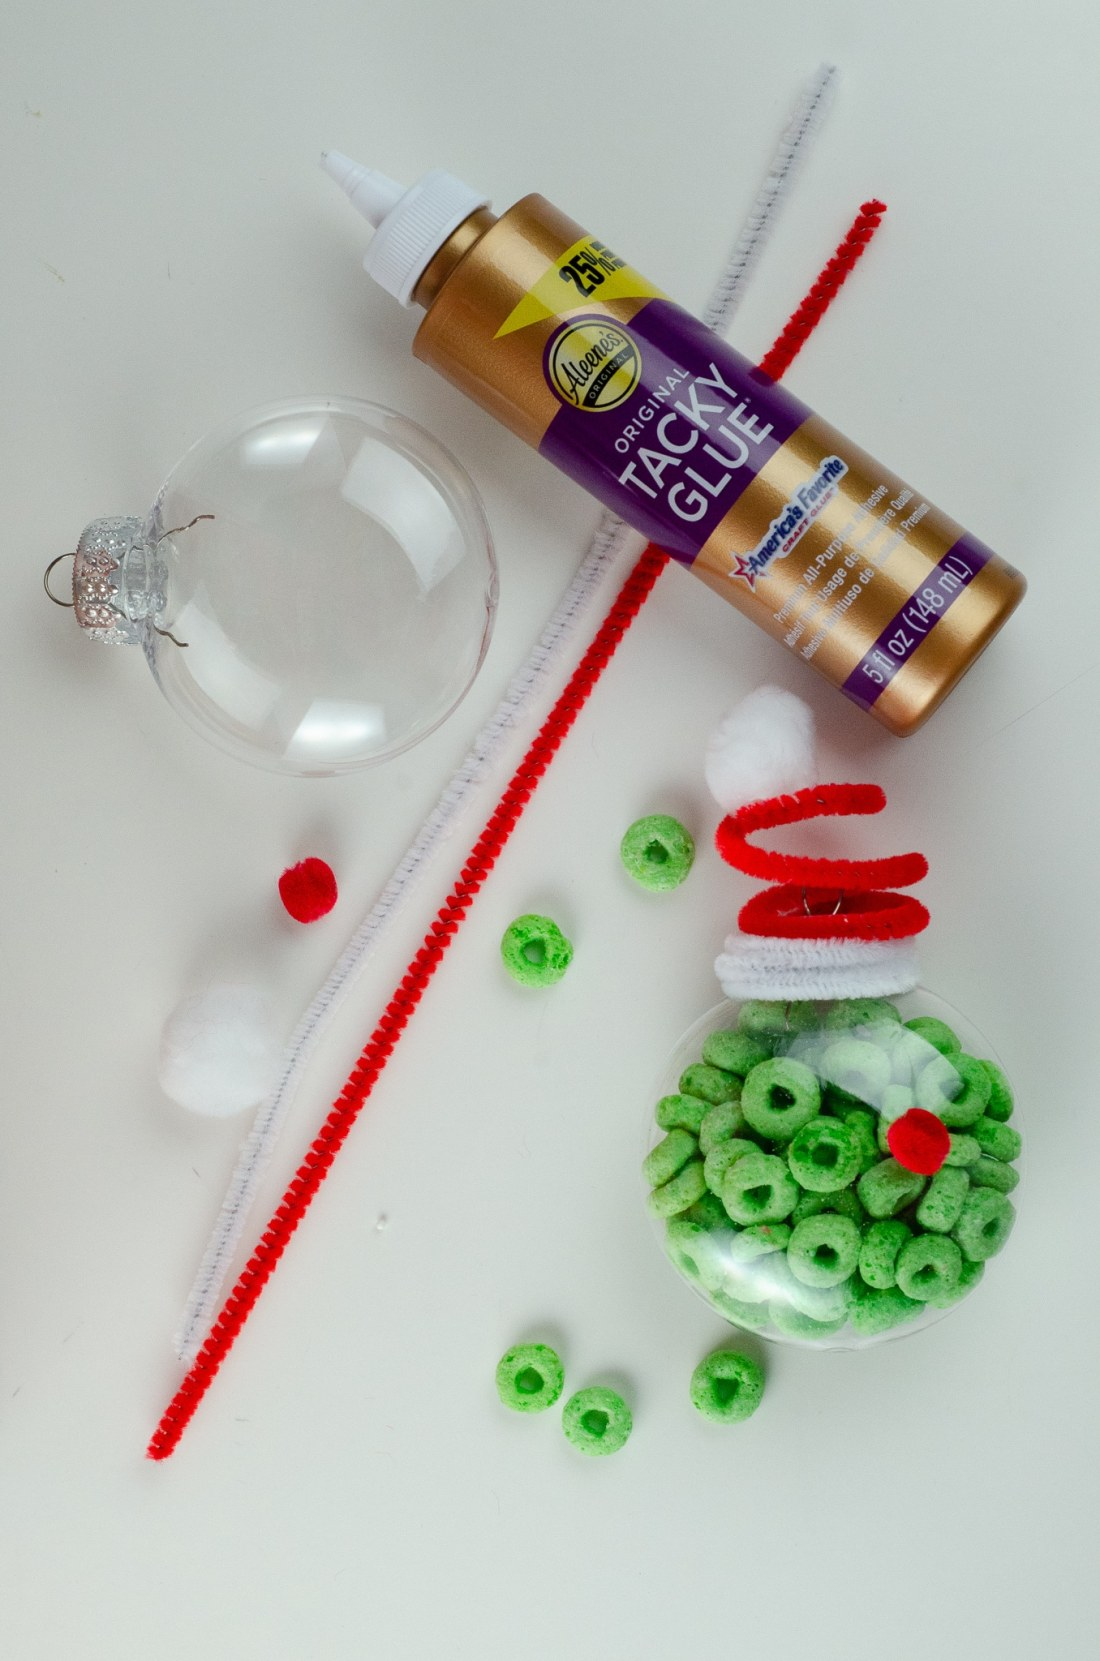 Christmas Ornament Ideas for Kids Using Cereal The Grinch Supplies. It's time to let the kids be the boss for this new kid-friendly Christmas DIY. Rethink Cereal with somr my Christmas Ornament Ideas for Kids Using Cereal.